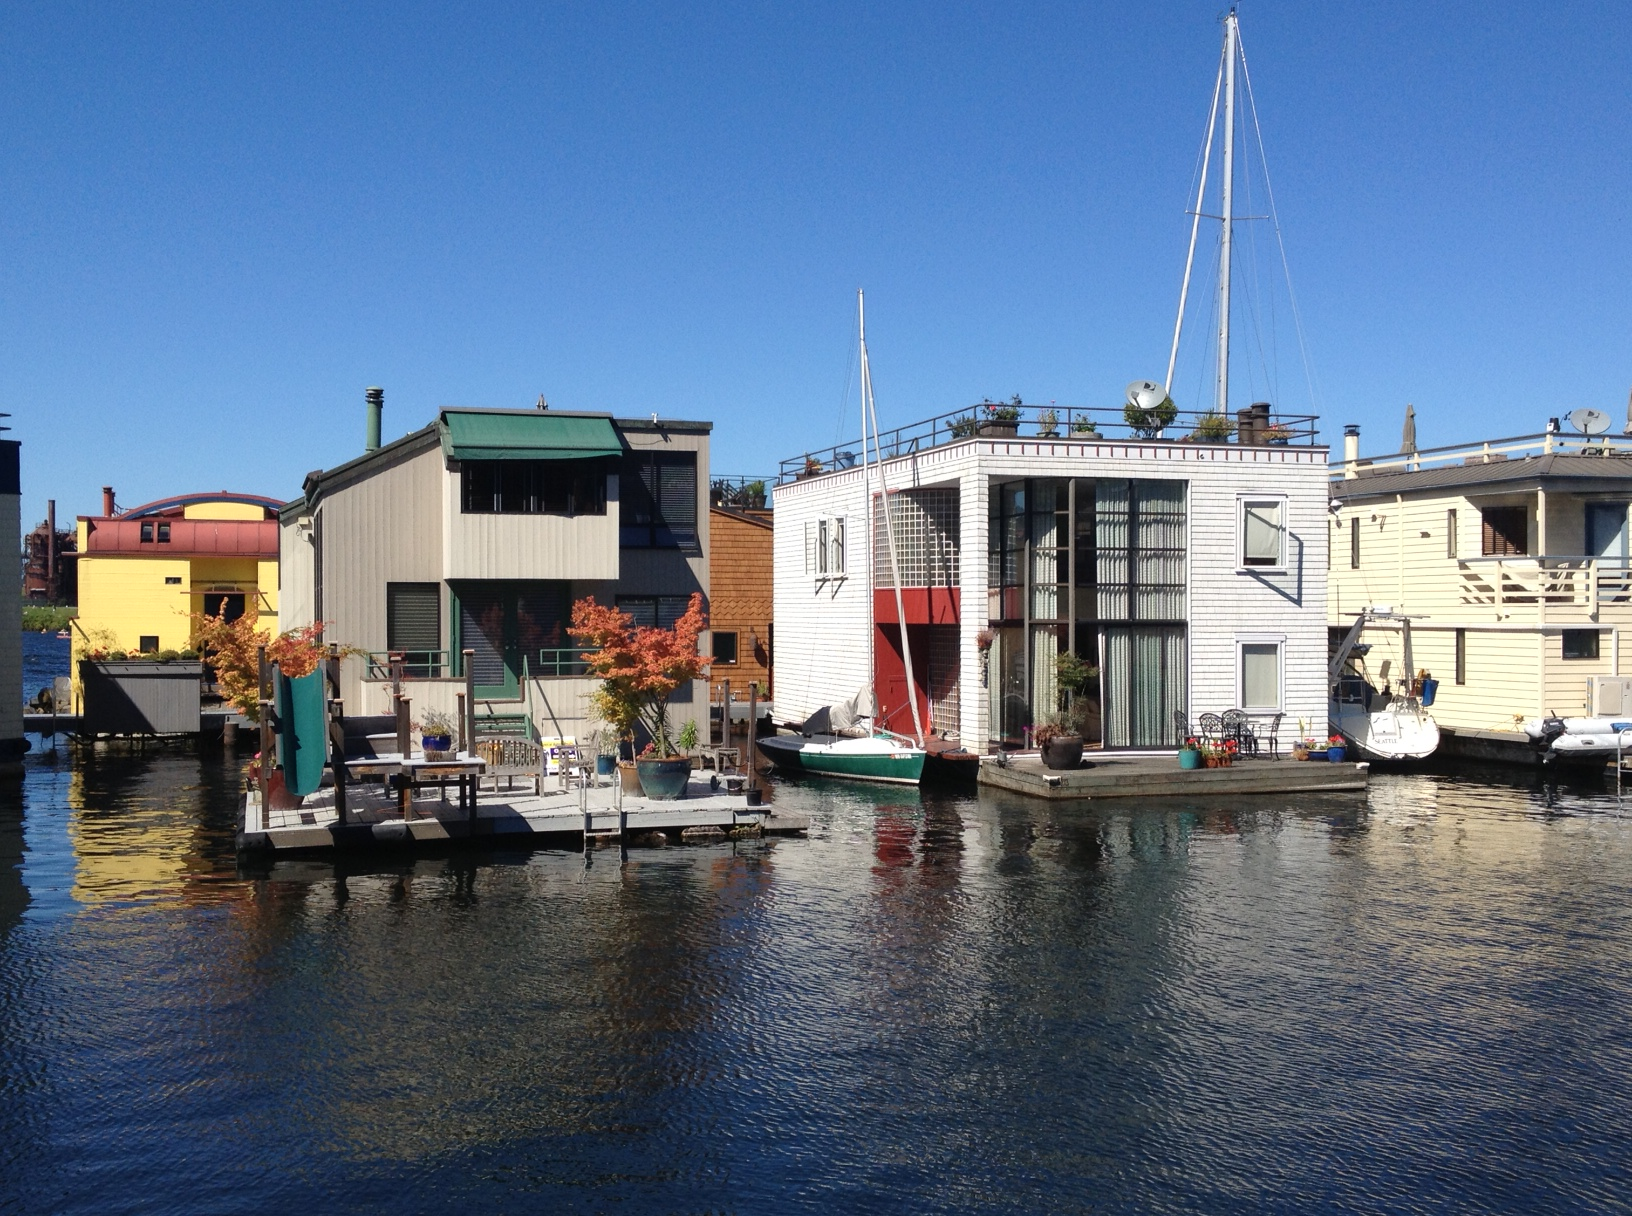 What s it like to live in a seattle floating home find out at the seattle floating homes tour - Floating house seattle ...